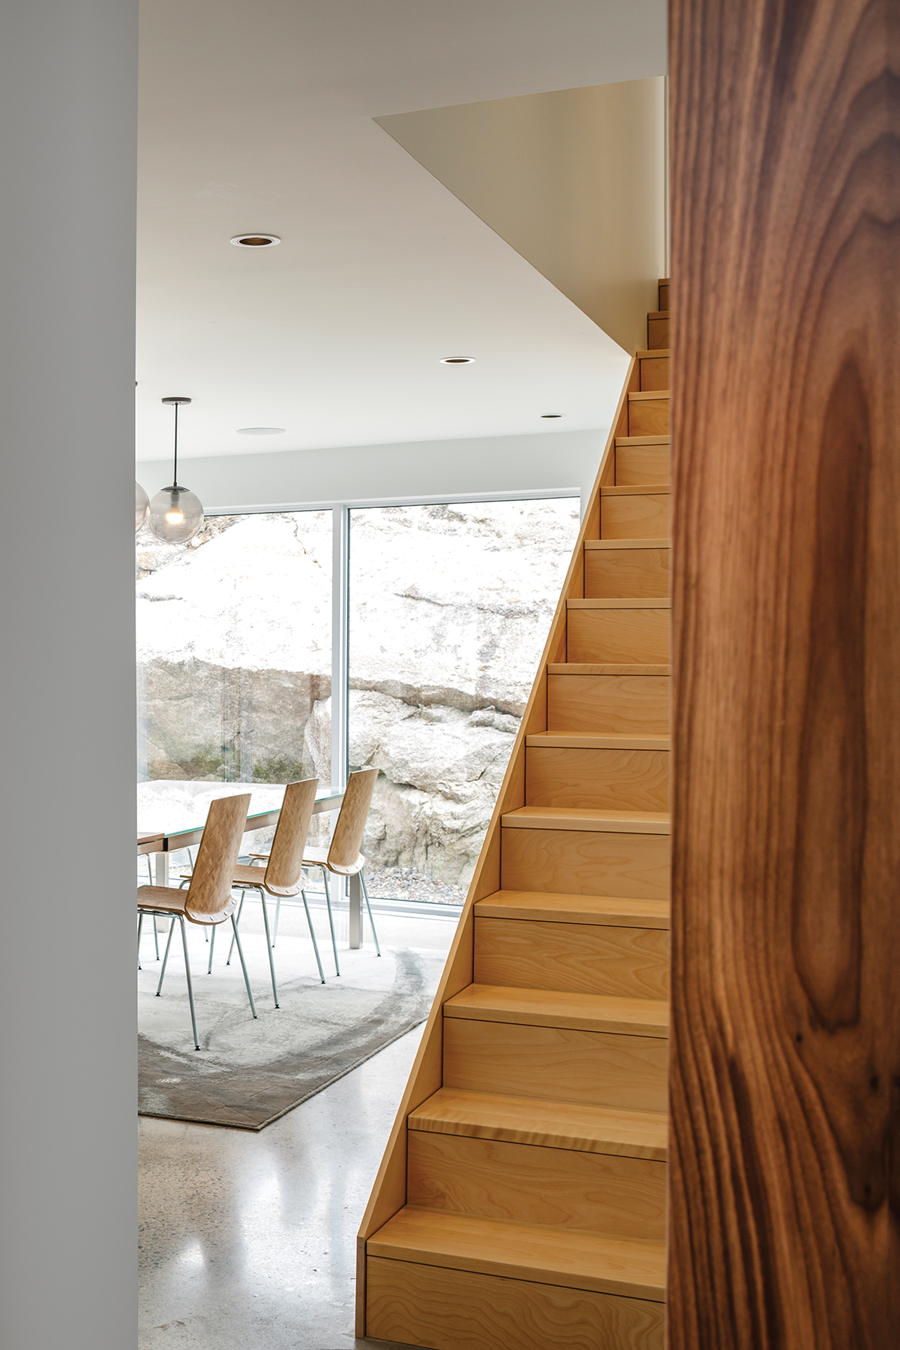 An exposed rock face forms a dramatic backdrop for the dining area.